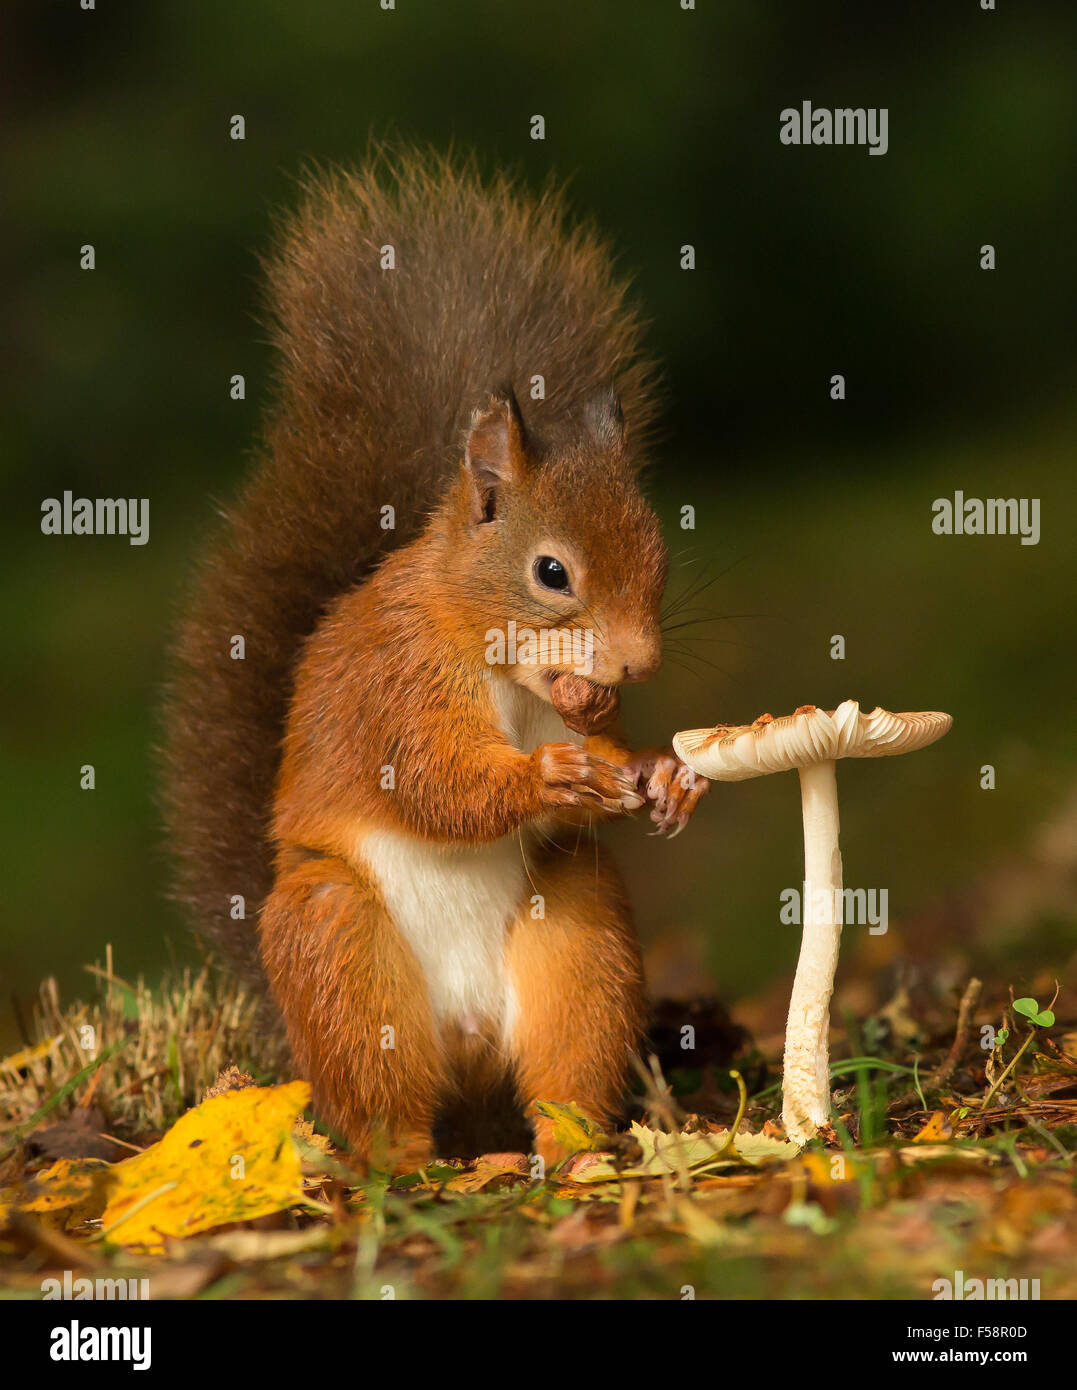 Red squirrel with a hazelnut in its mouth standing next to a toadstool giving the impression of a personal dining - Stock Image